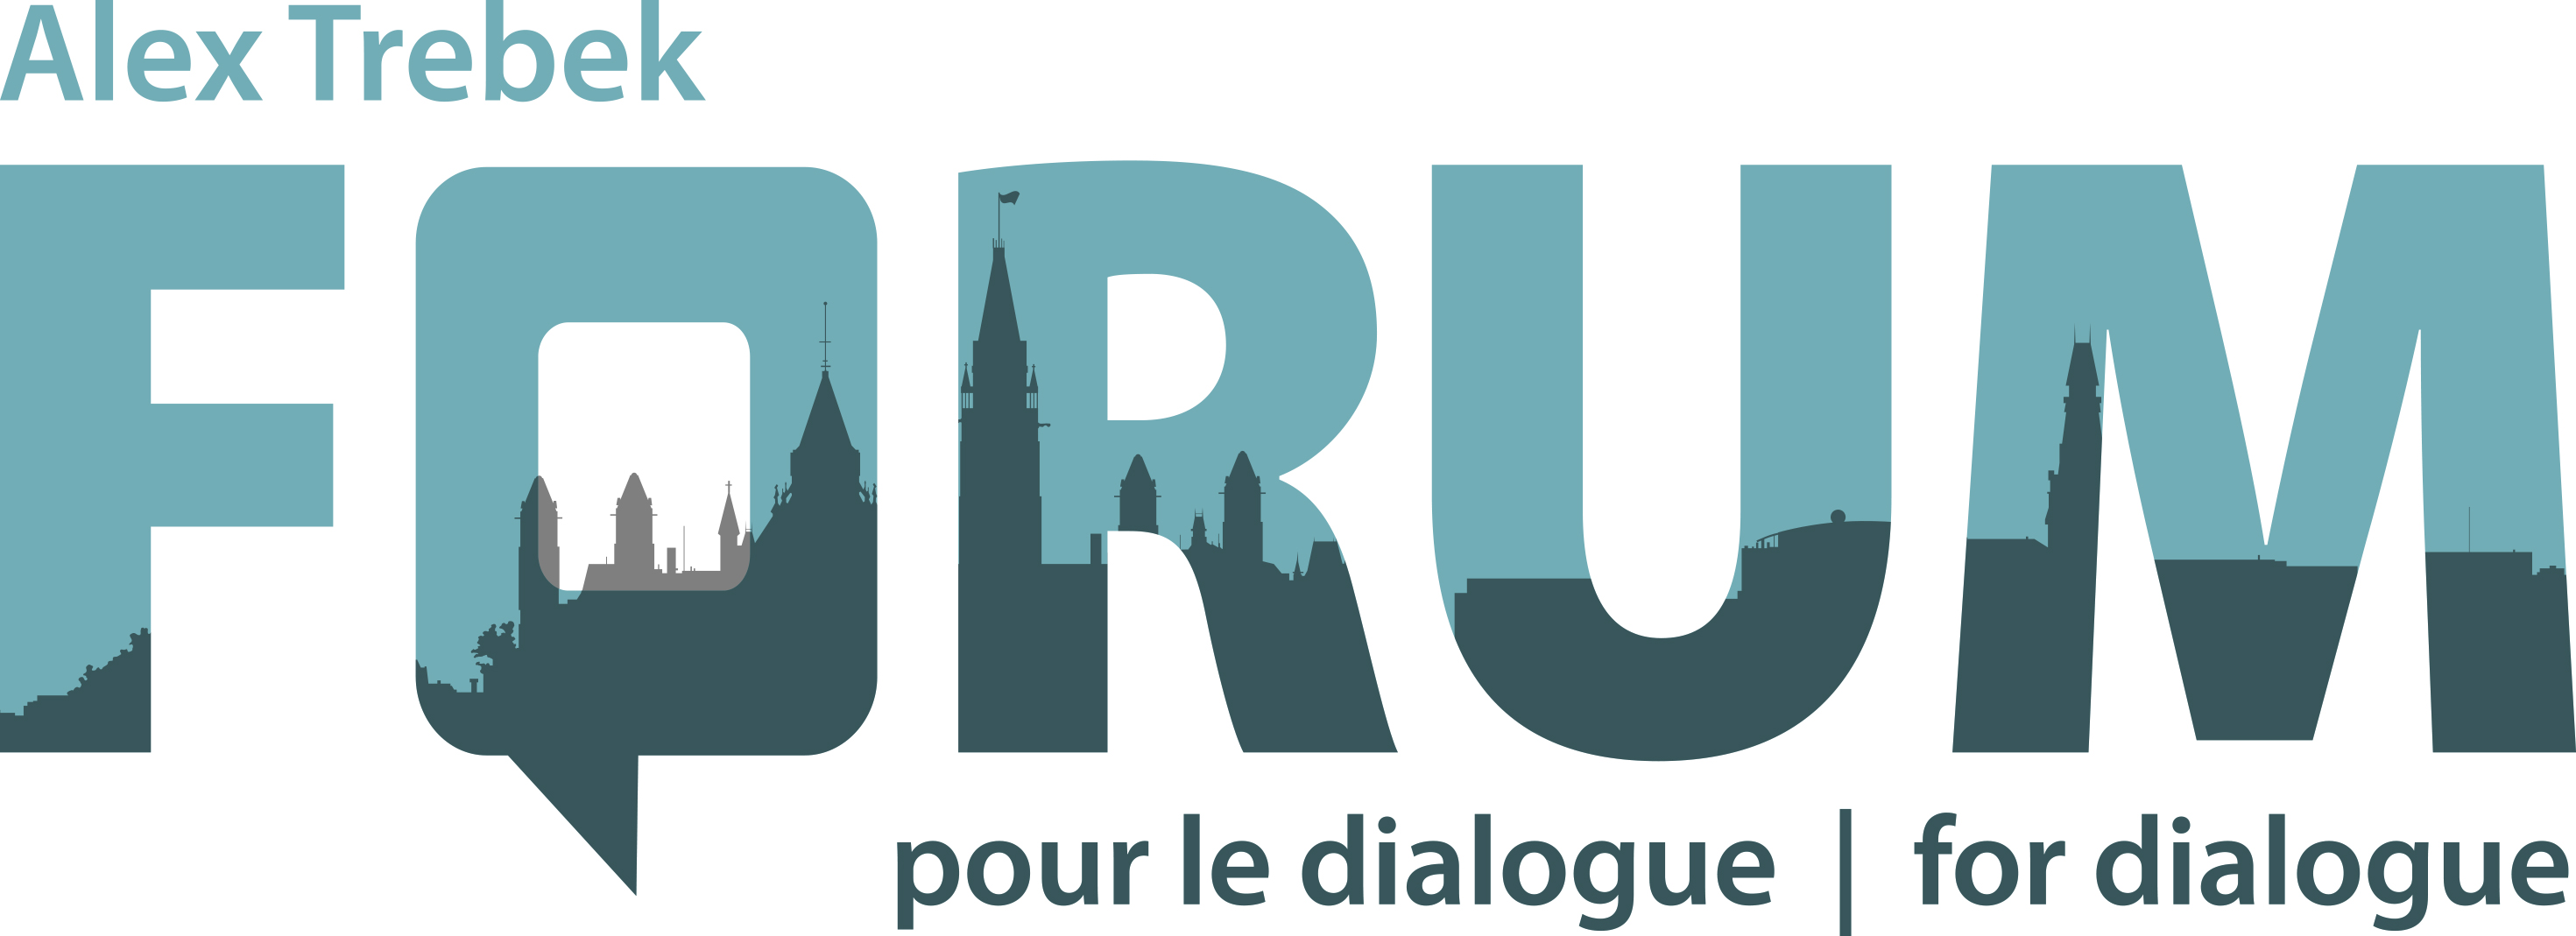 Alex Trebek Forum for Dialogue Logo